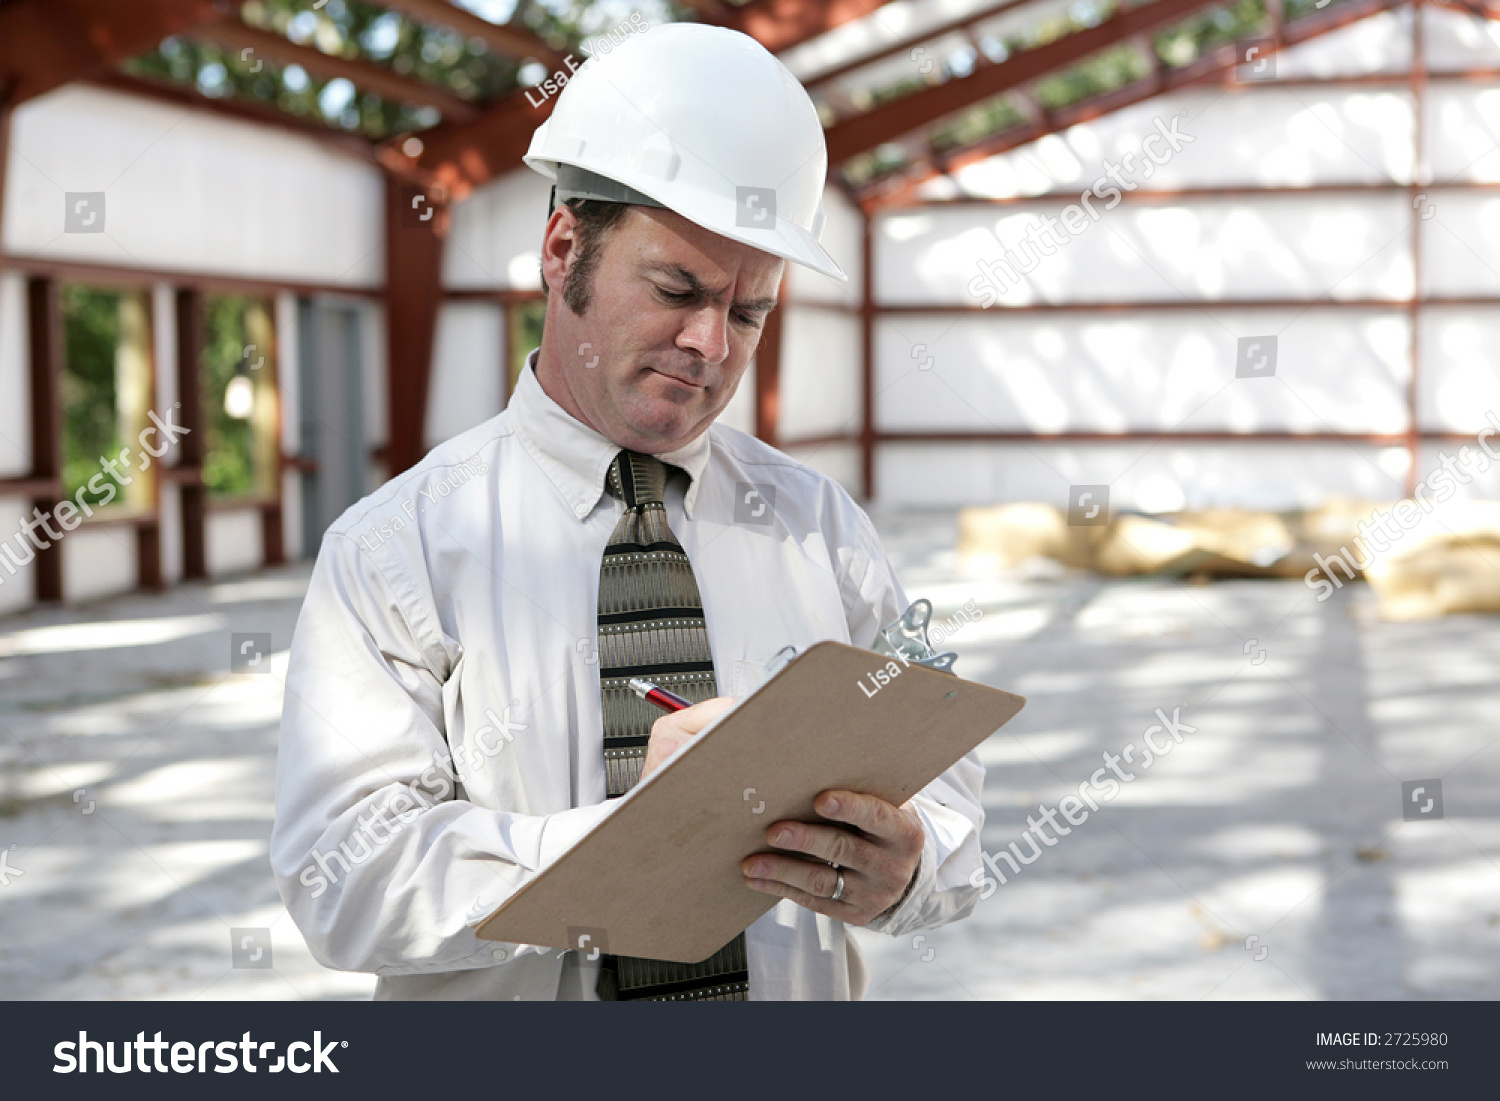 how to become a construction inspector